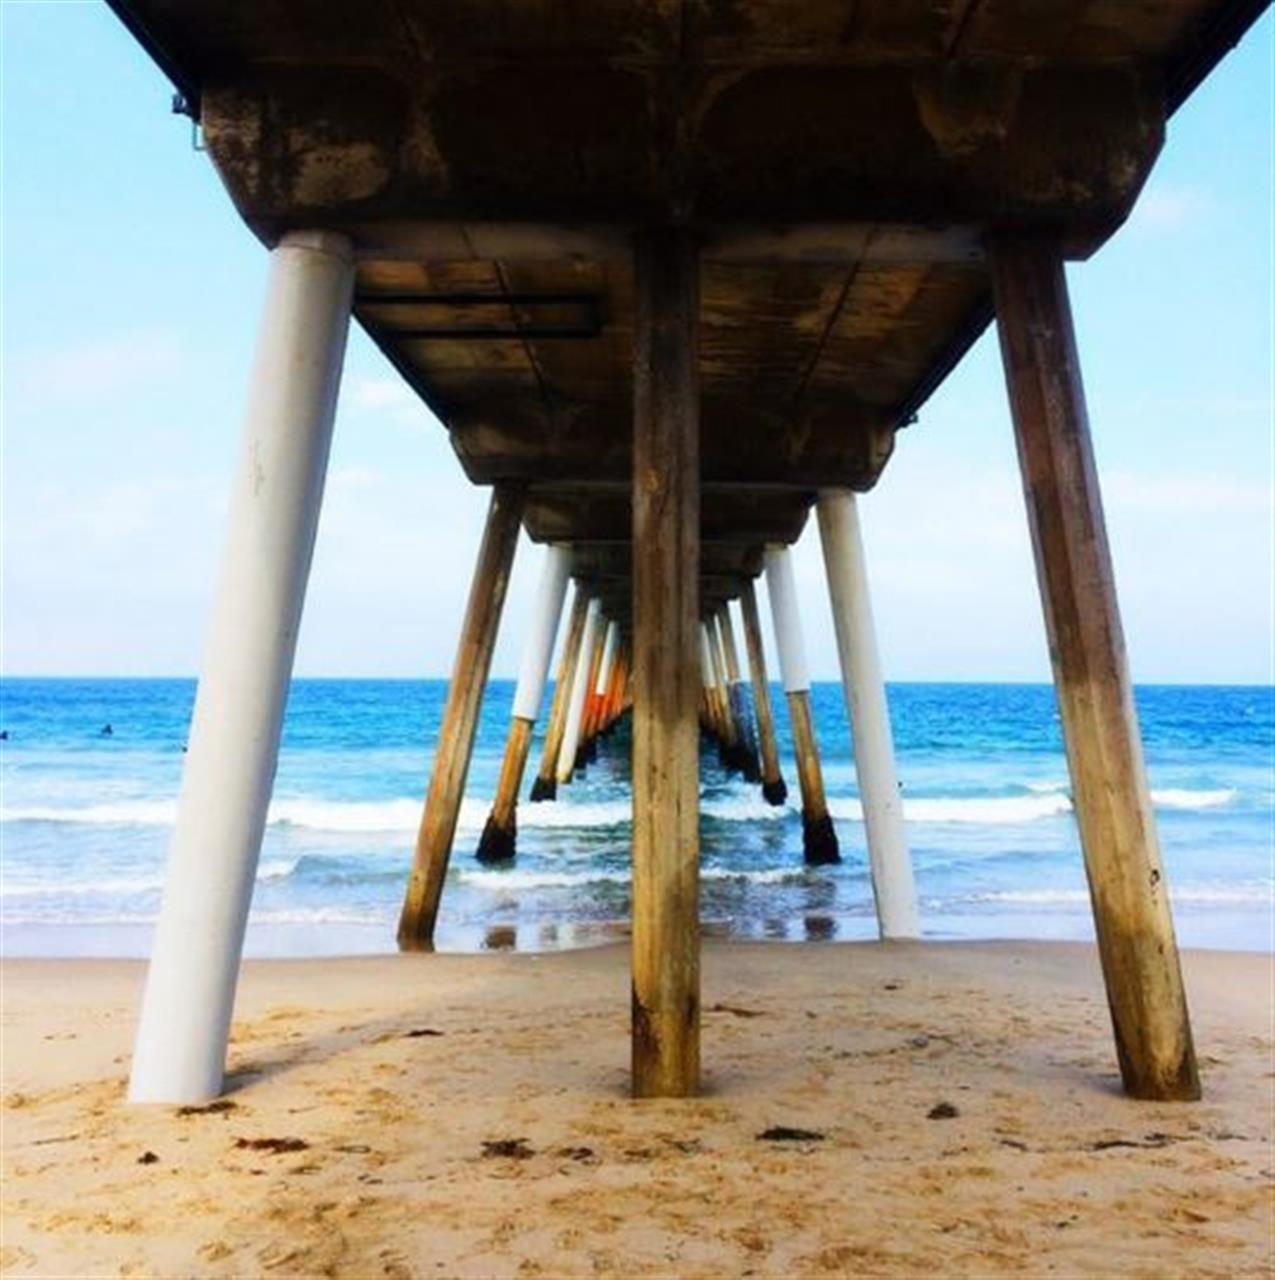 Under the Hermosa Beach pier, Los Angeles, CA